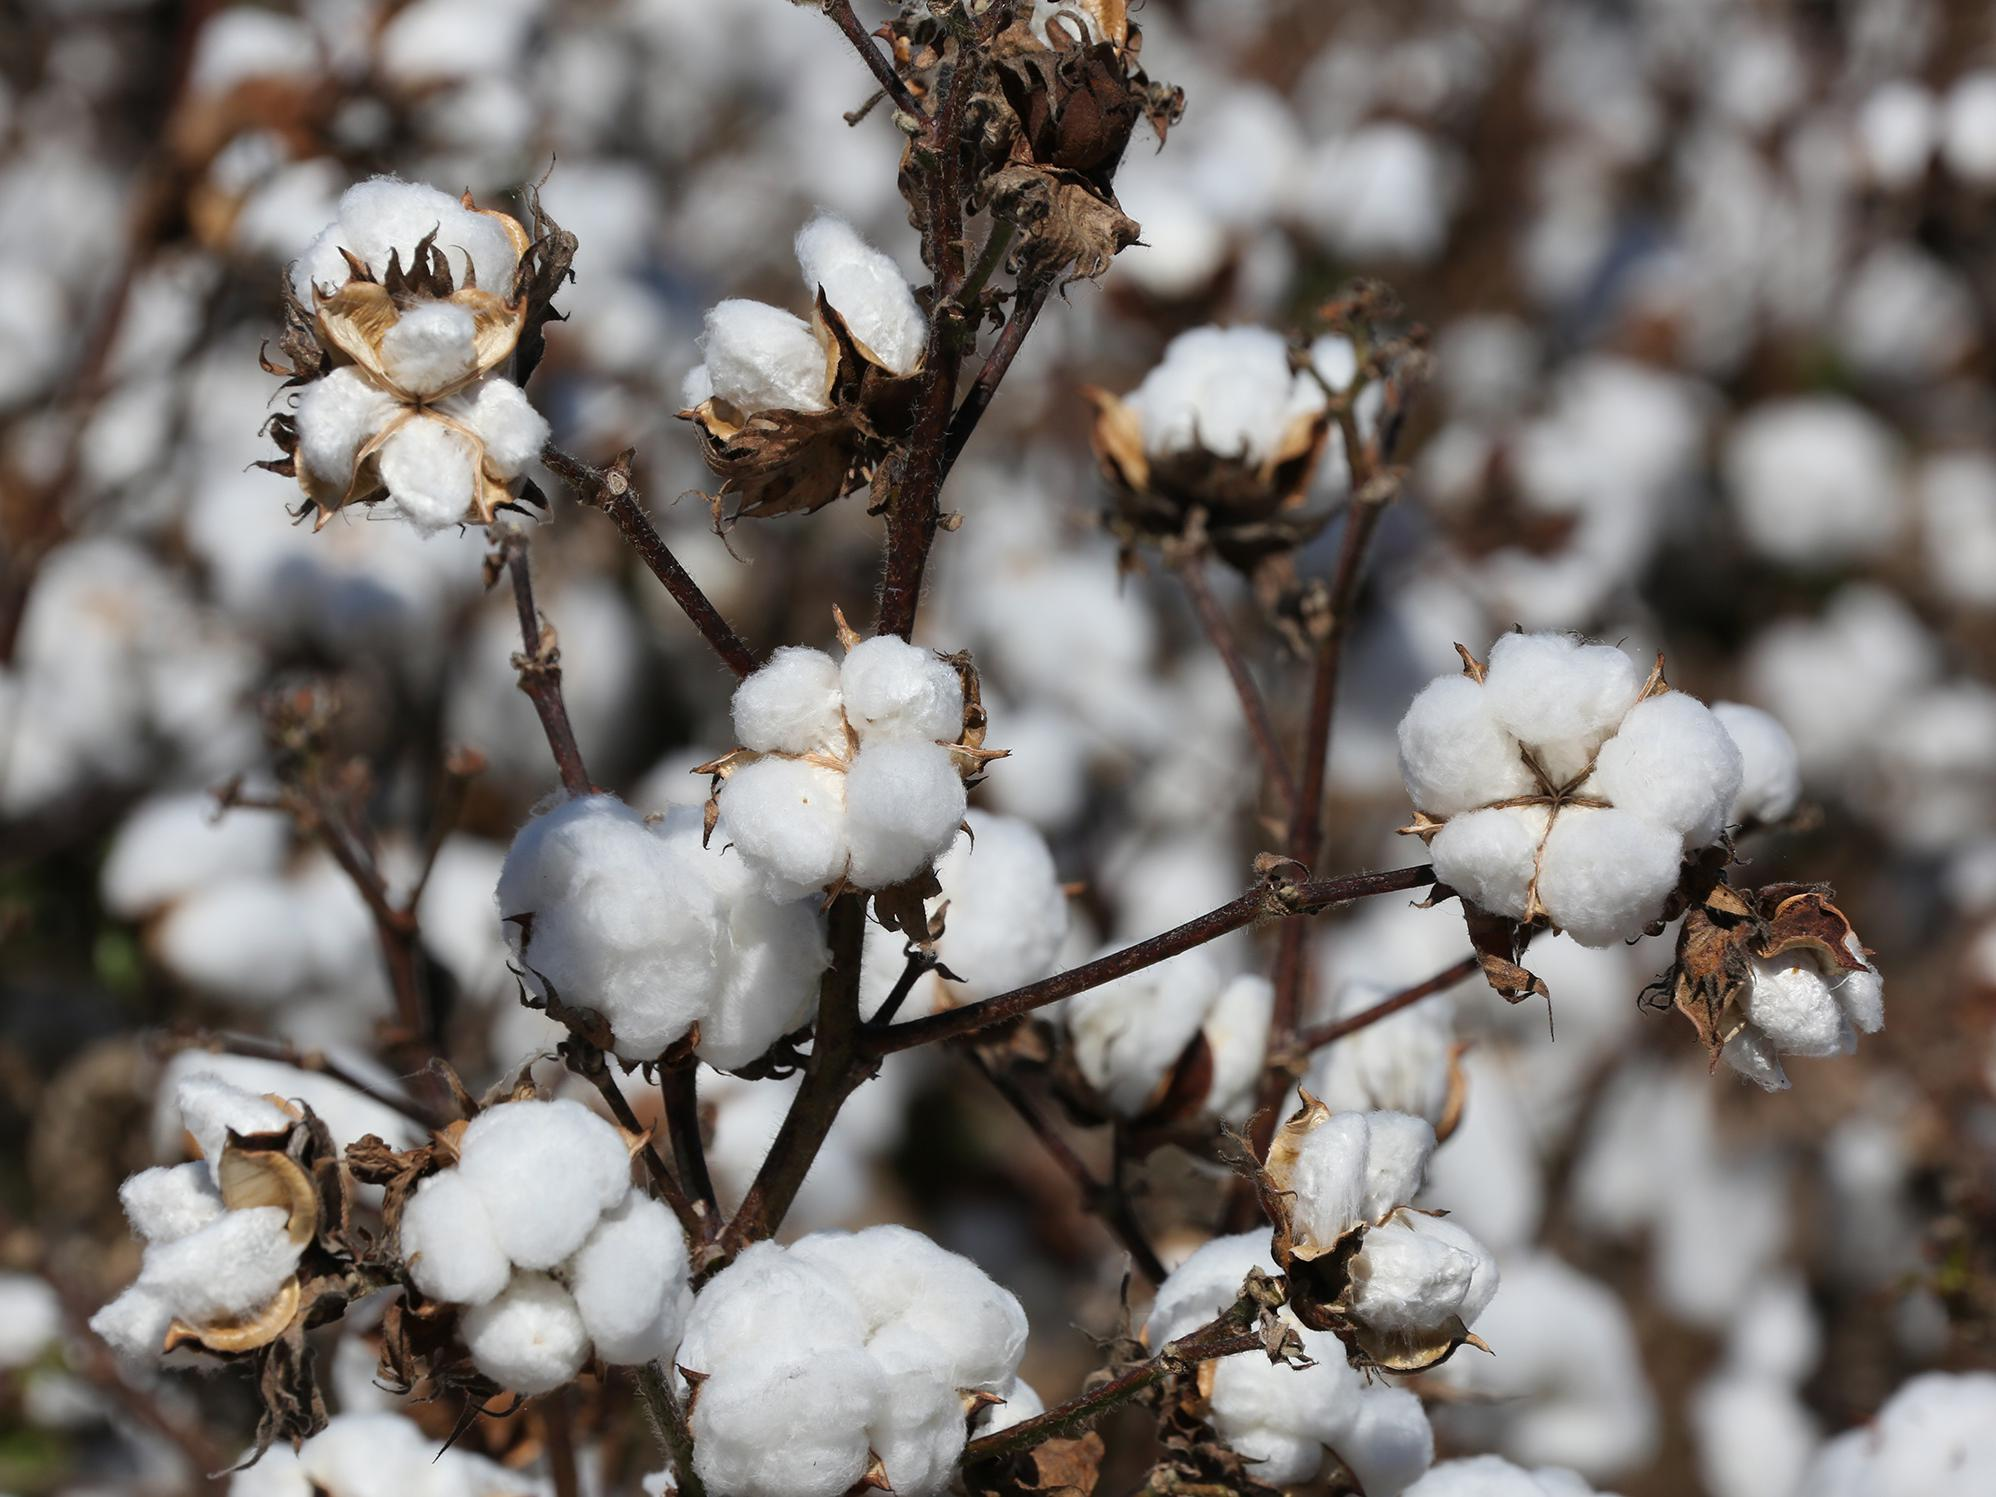 Defoliated cotton plants are ready for harvest.